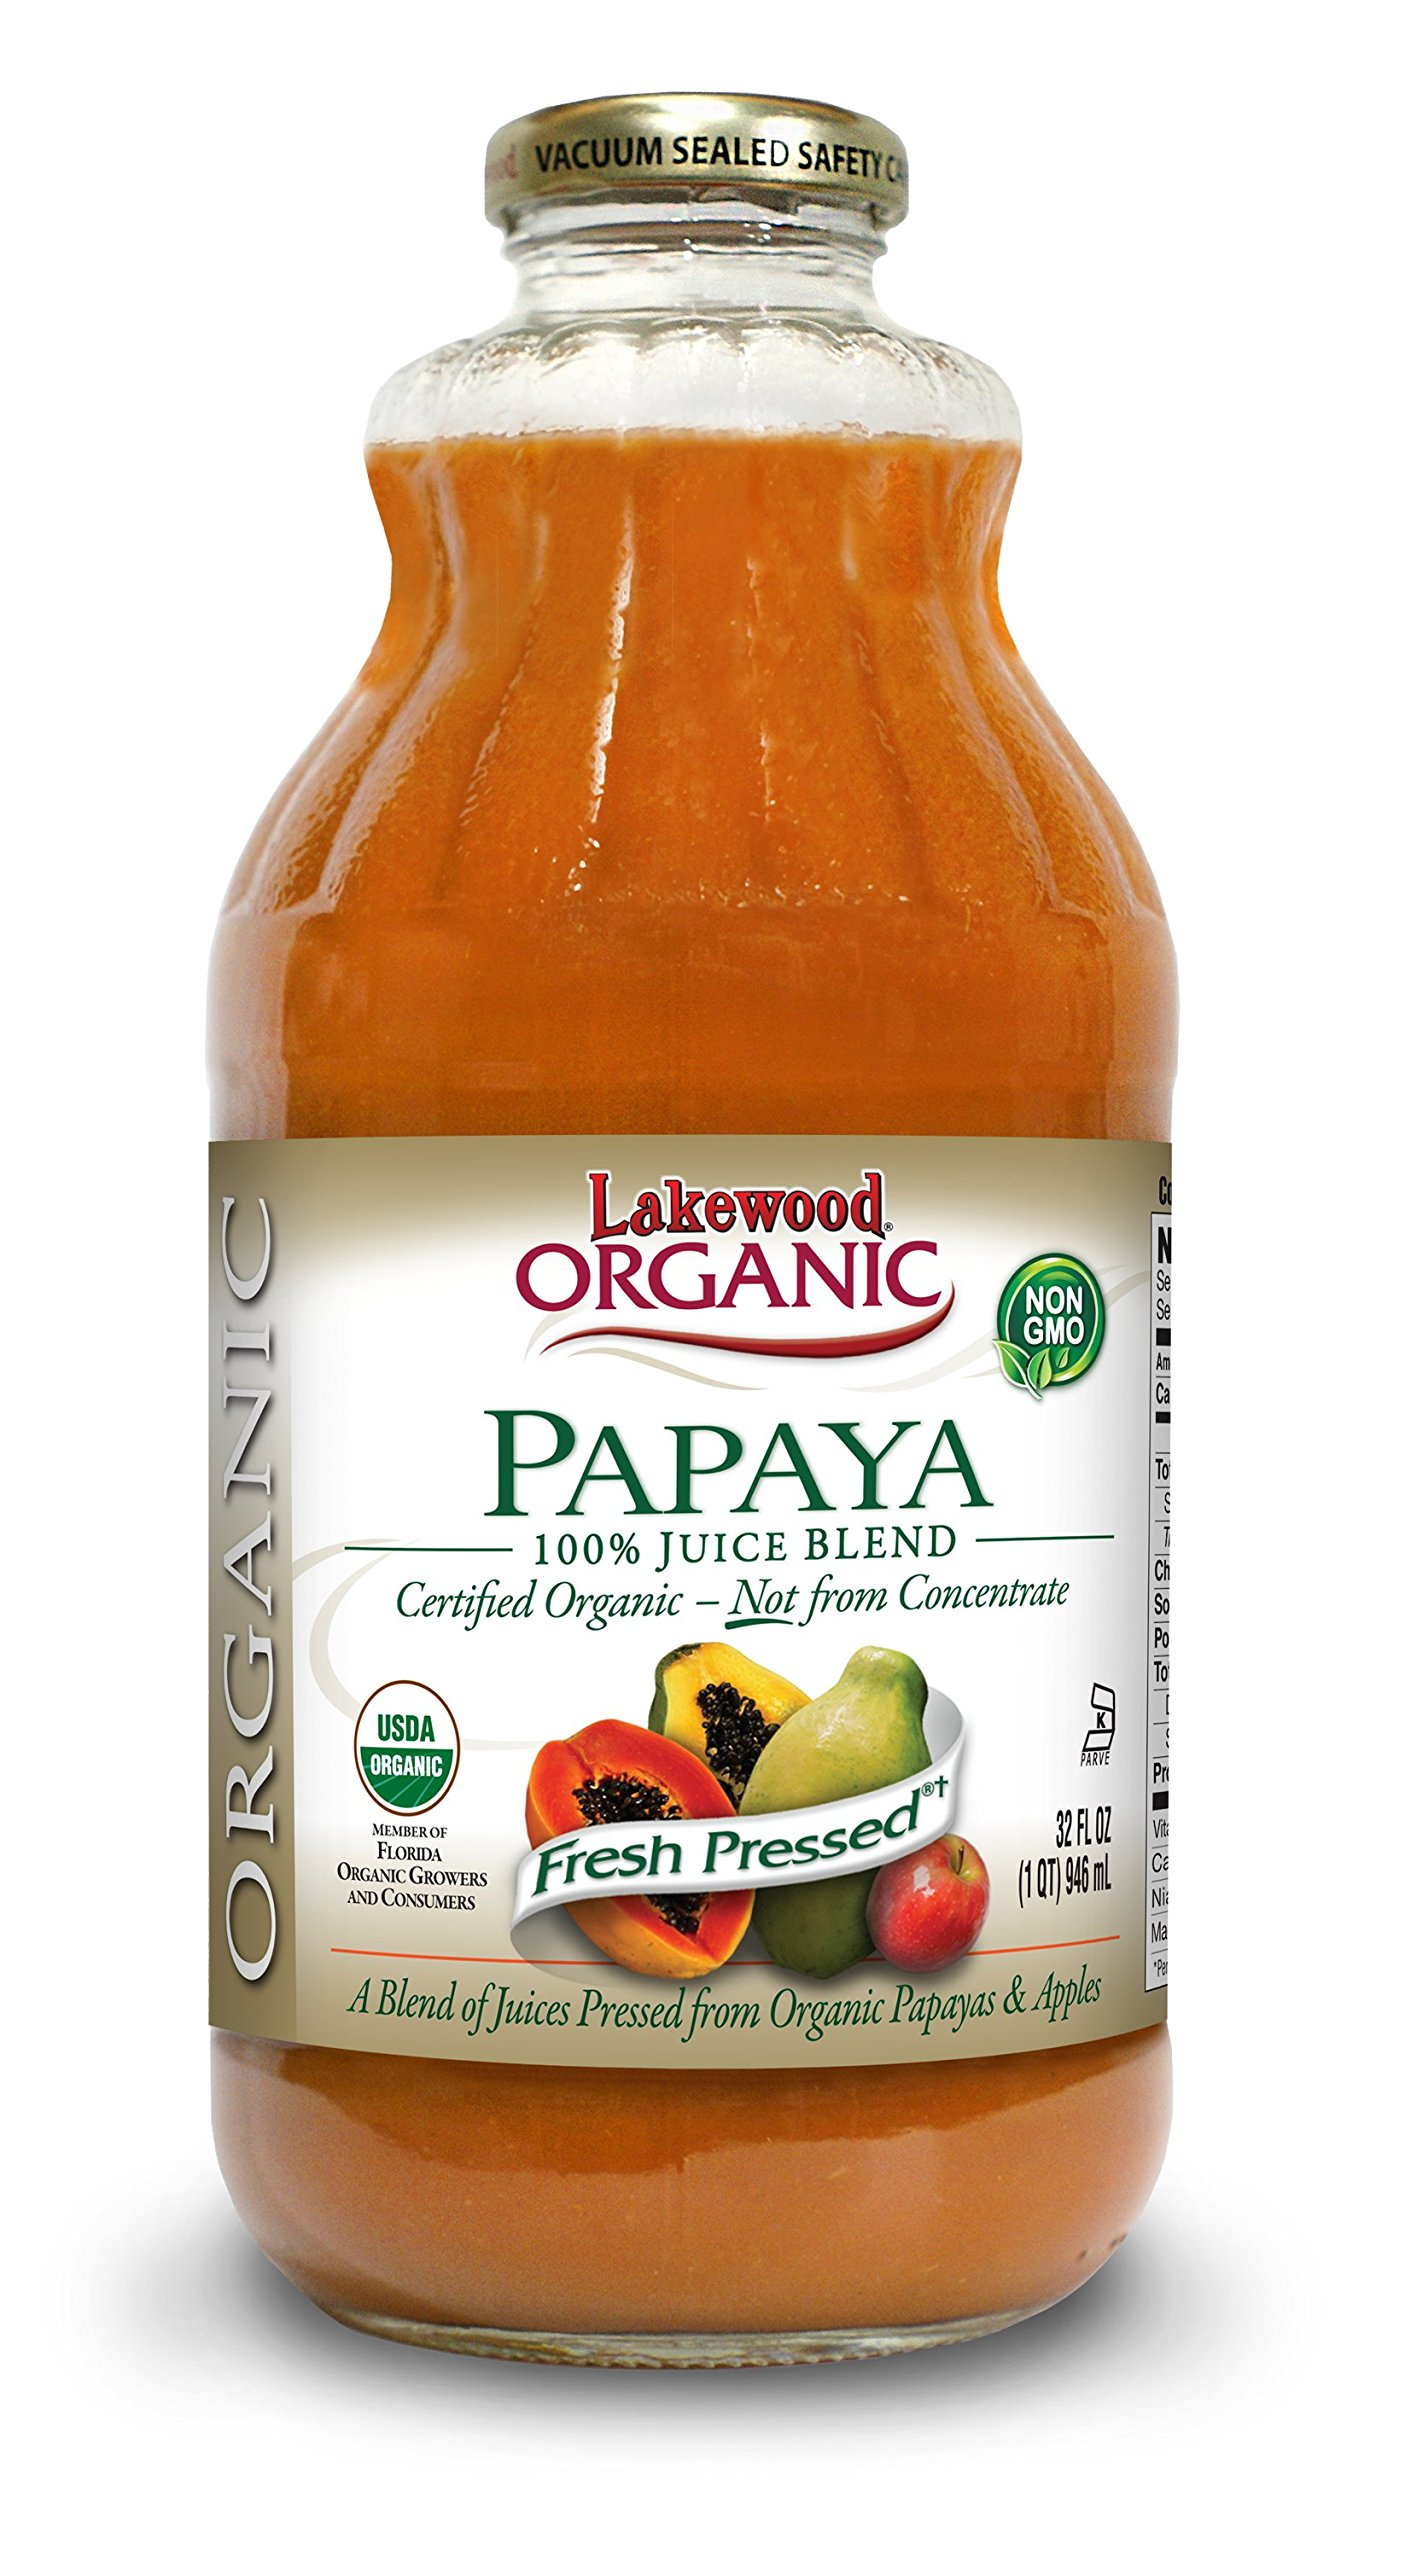 Lakewood Organic Papaya Juice, 32-Ounce Bottles (Pack of 6)